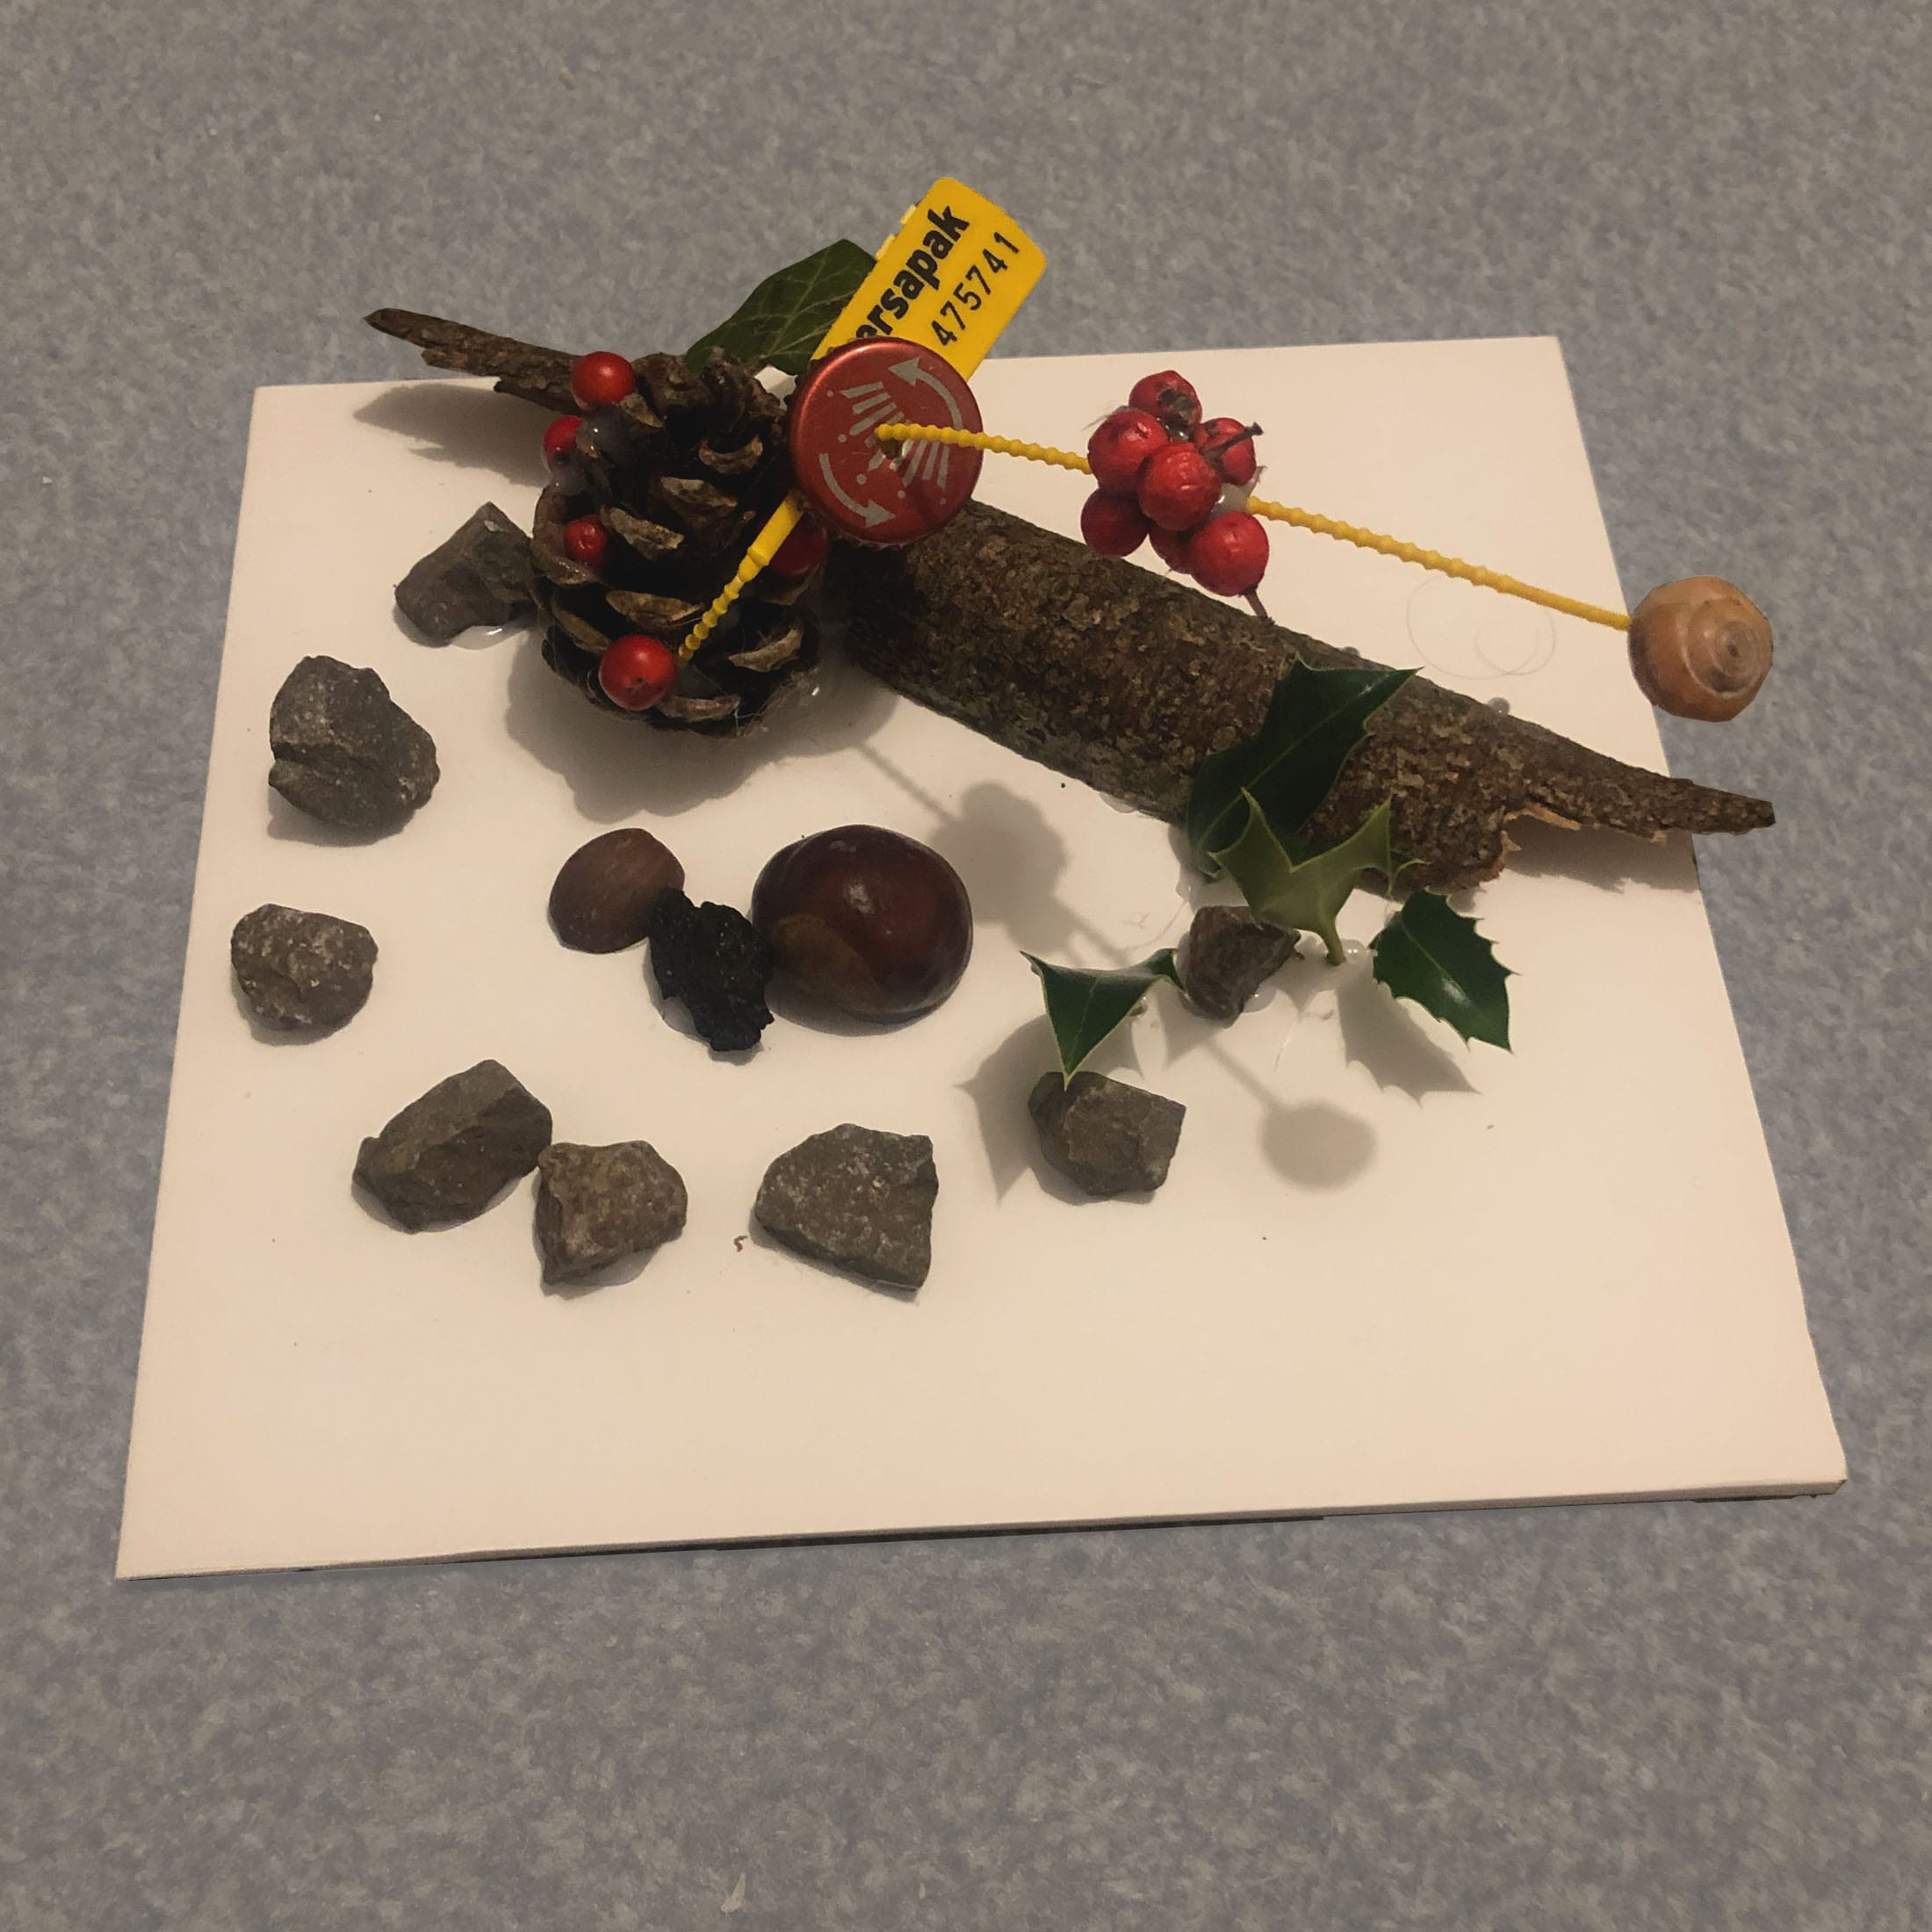 A collection of random objects (eg. pinecones, berries, rocks, tree bark, a bottle cap) turned into an unconventional sculpture.